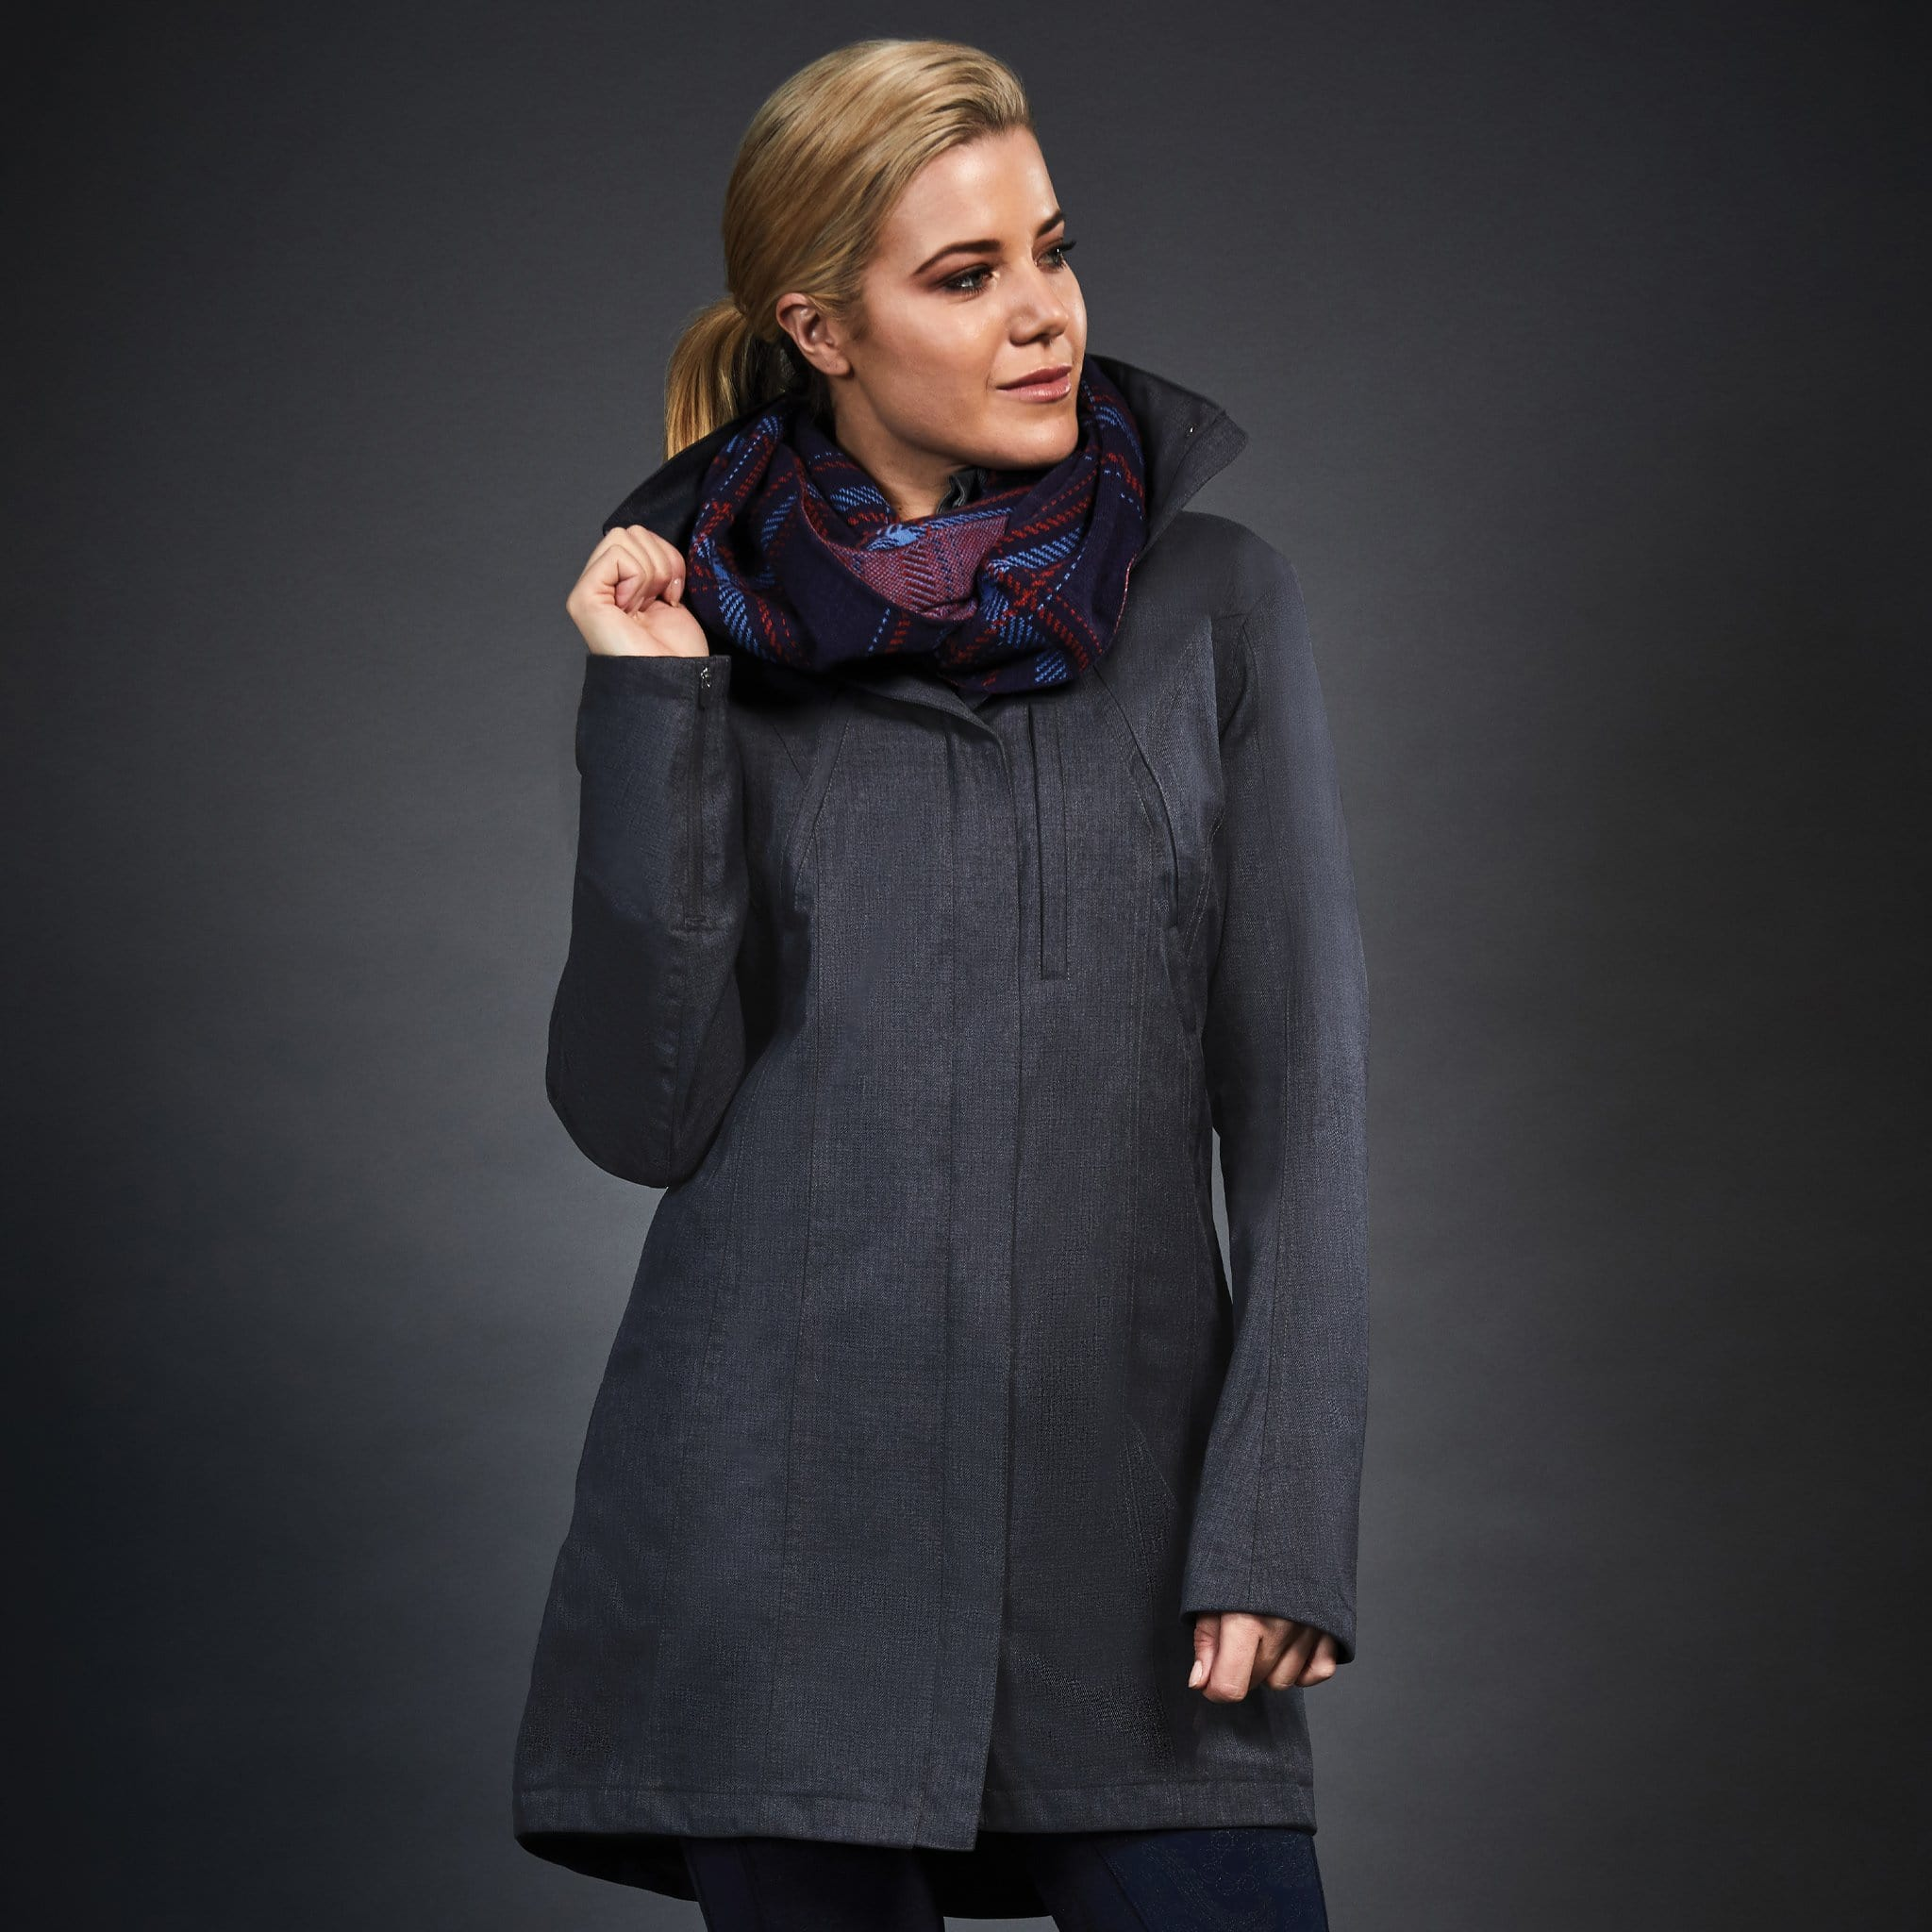 Dublin Black Ellie Waterproof Coat 1000567002 Grey Front On Model